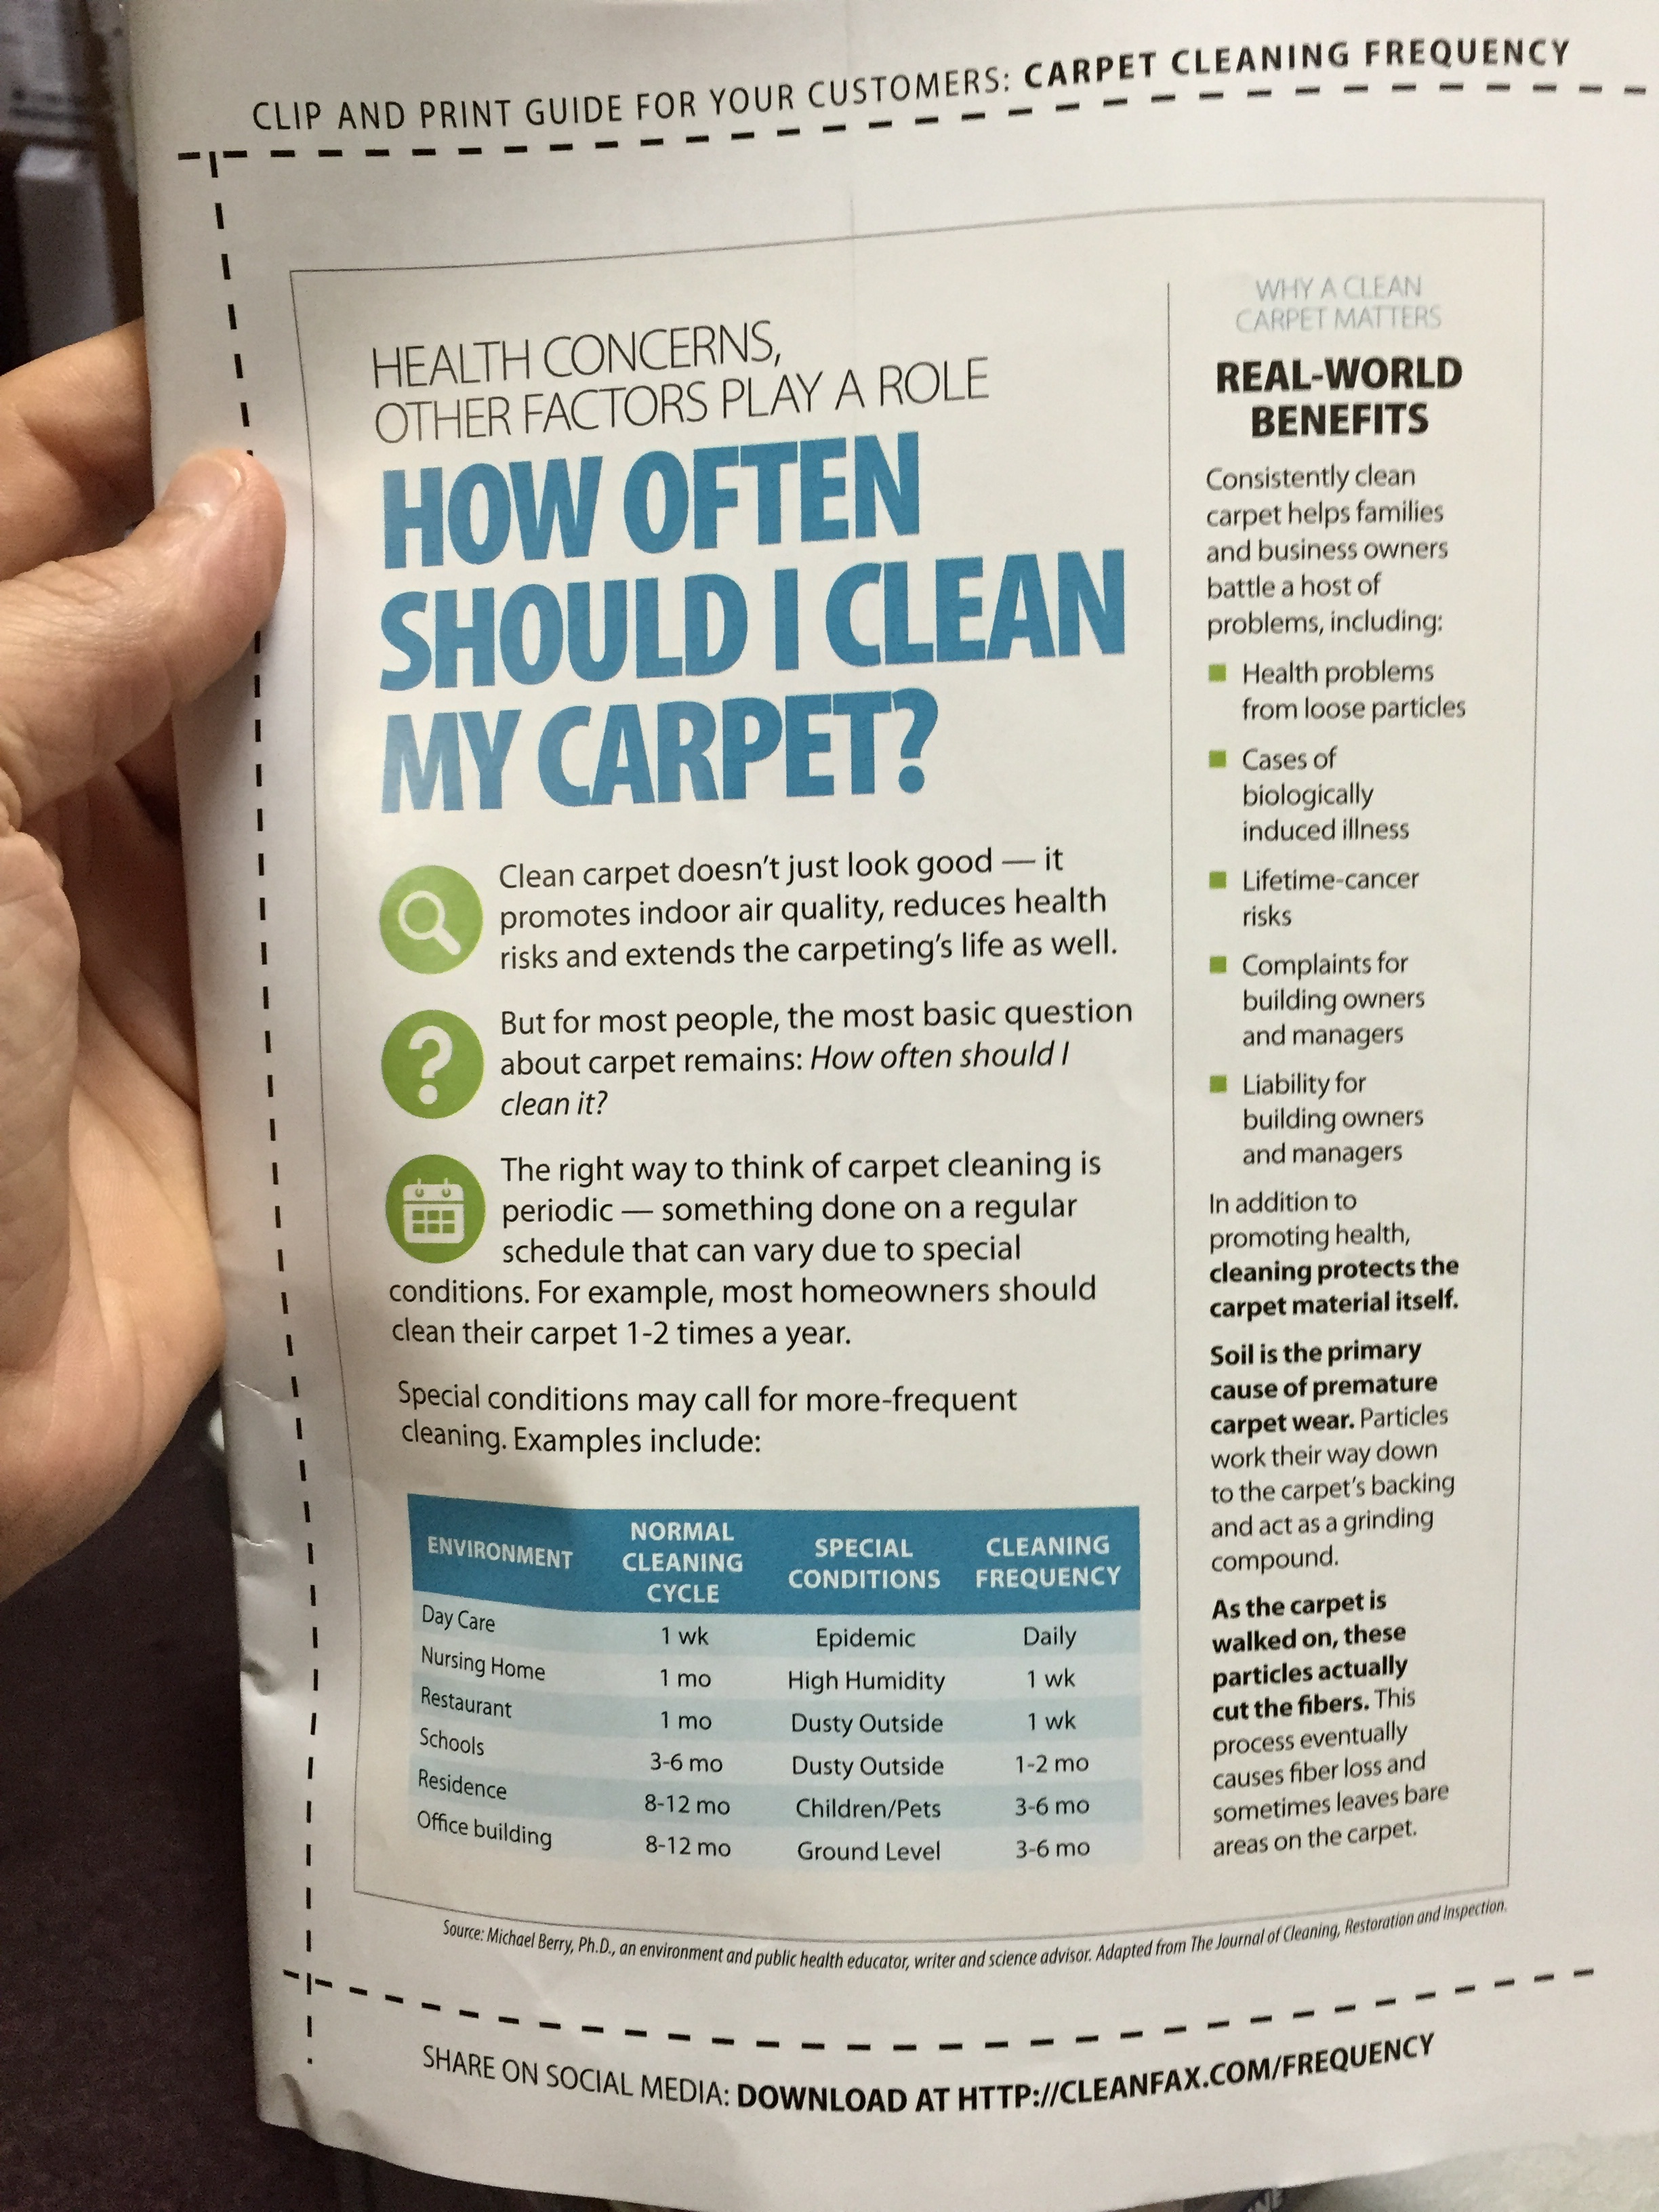 CarpetCleaningFrequency